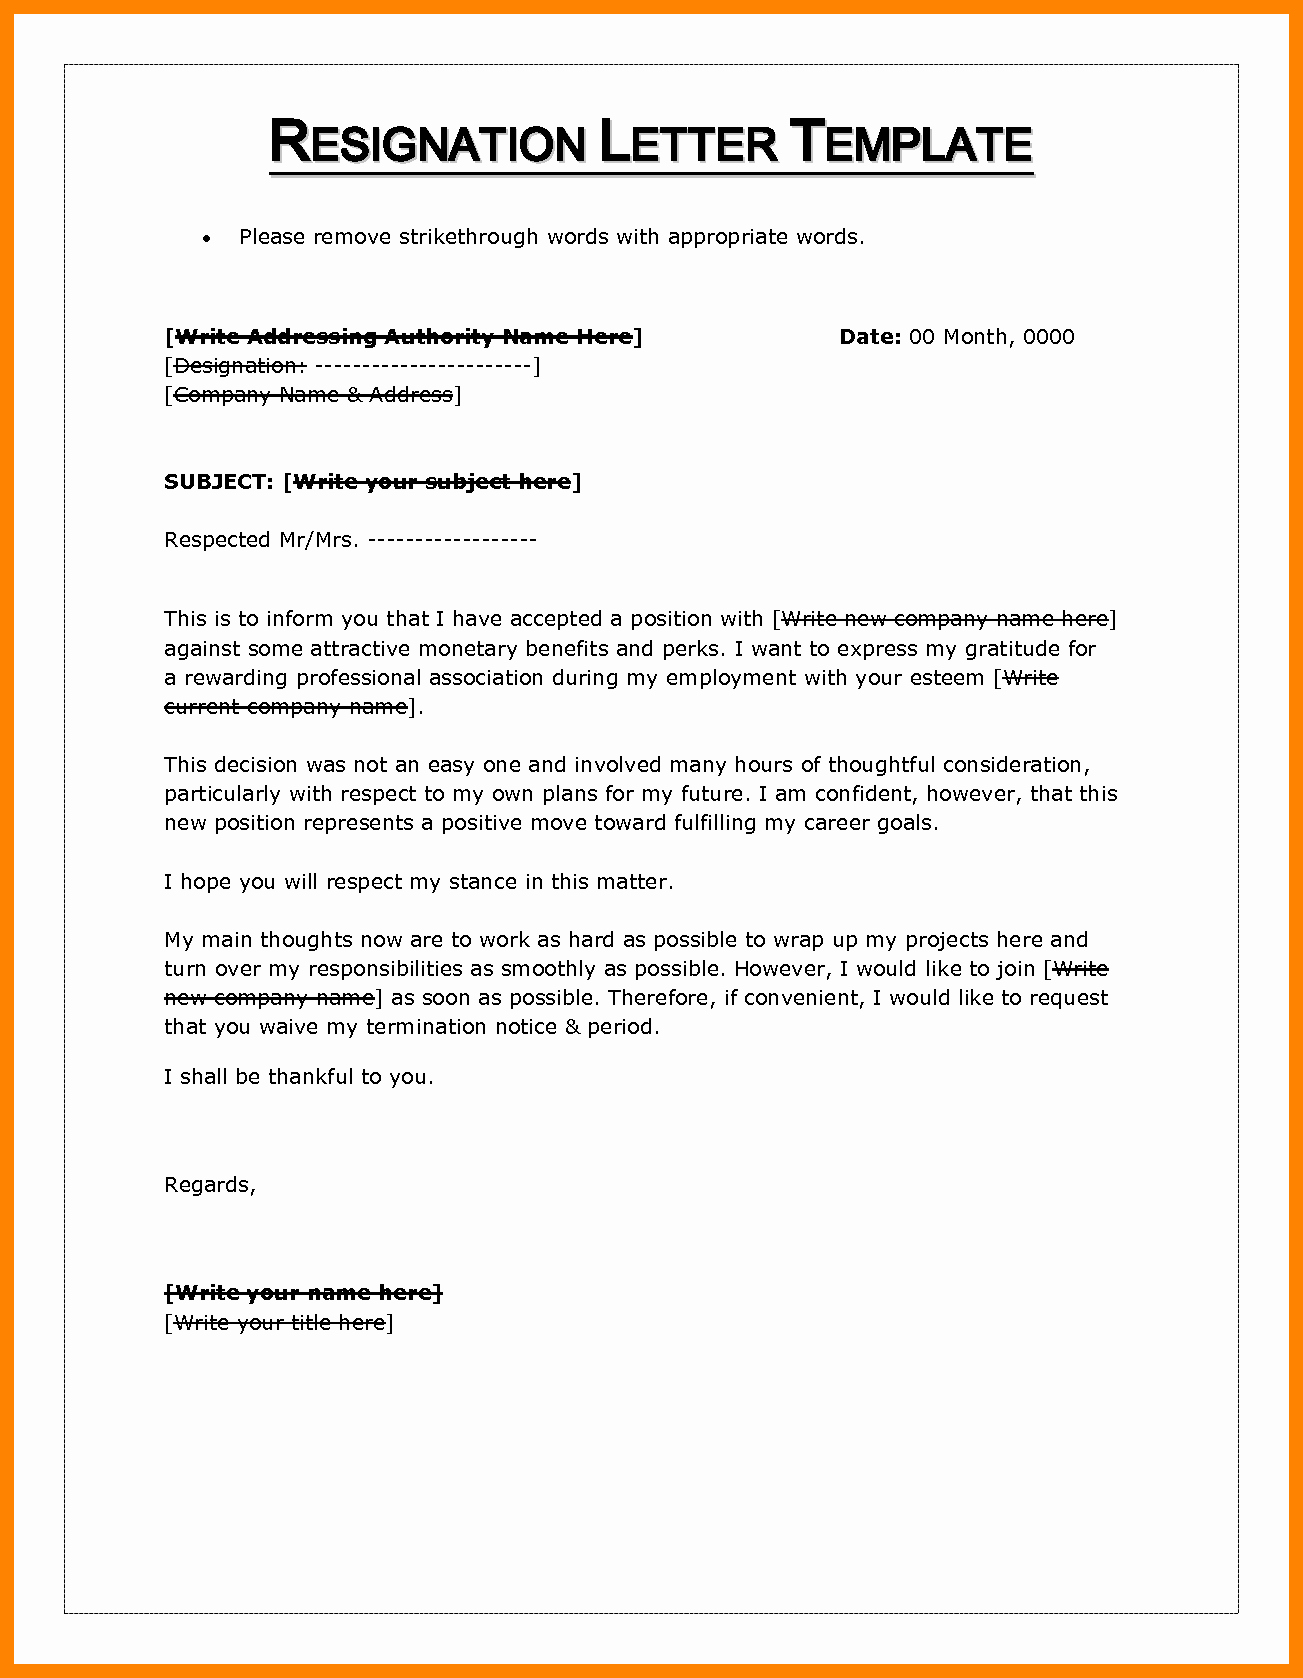 Letter Of Resignation Template Microsoft Best Of 6 Letter Of Resignation Template Word